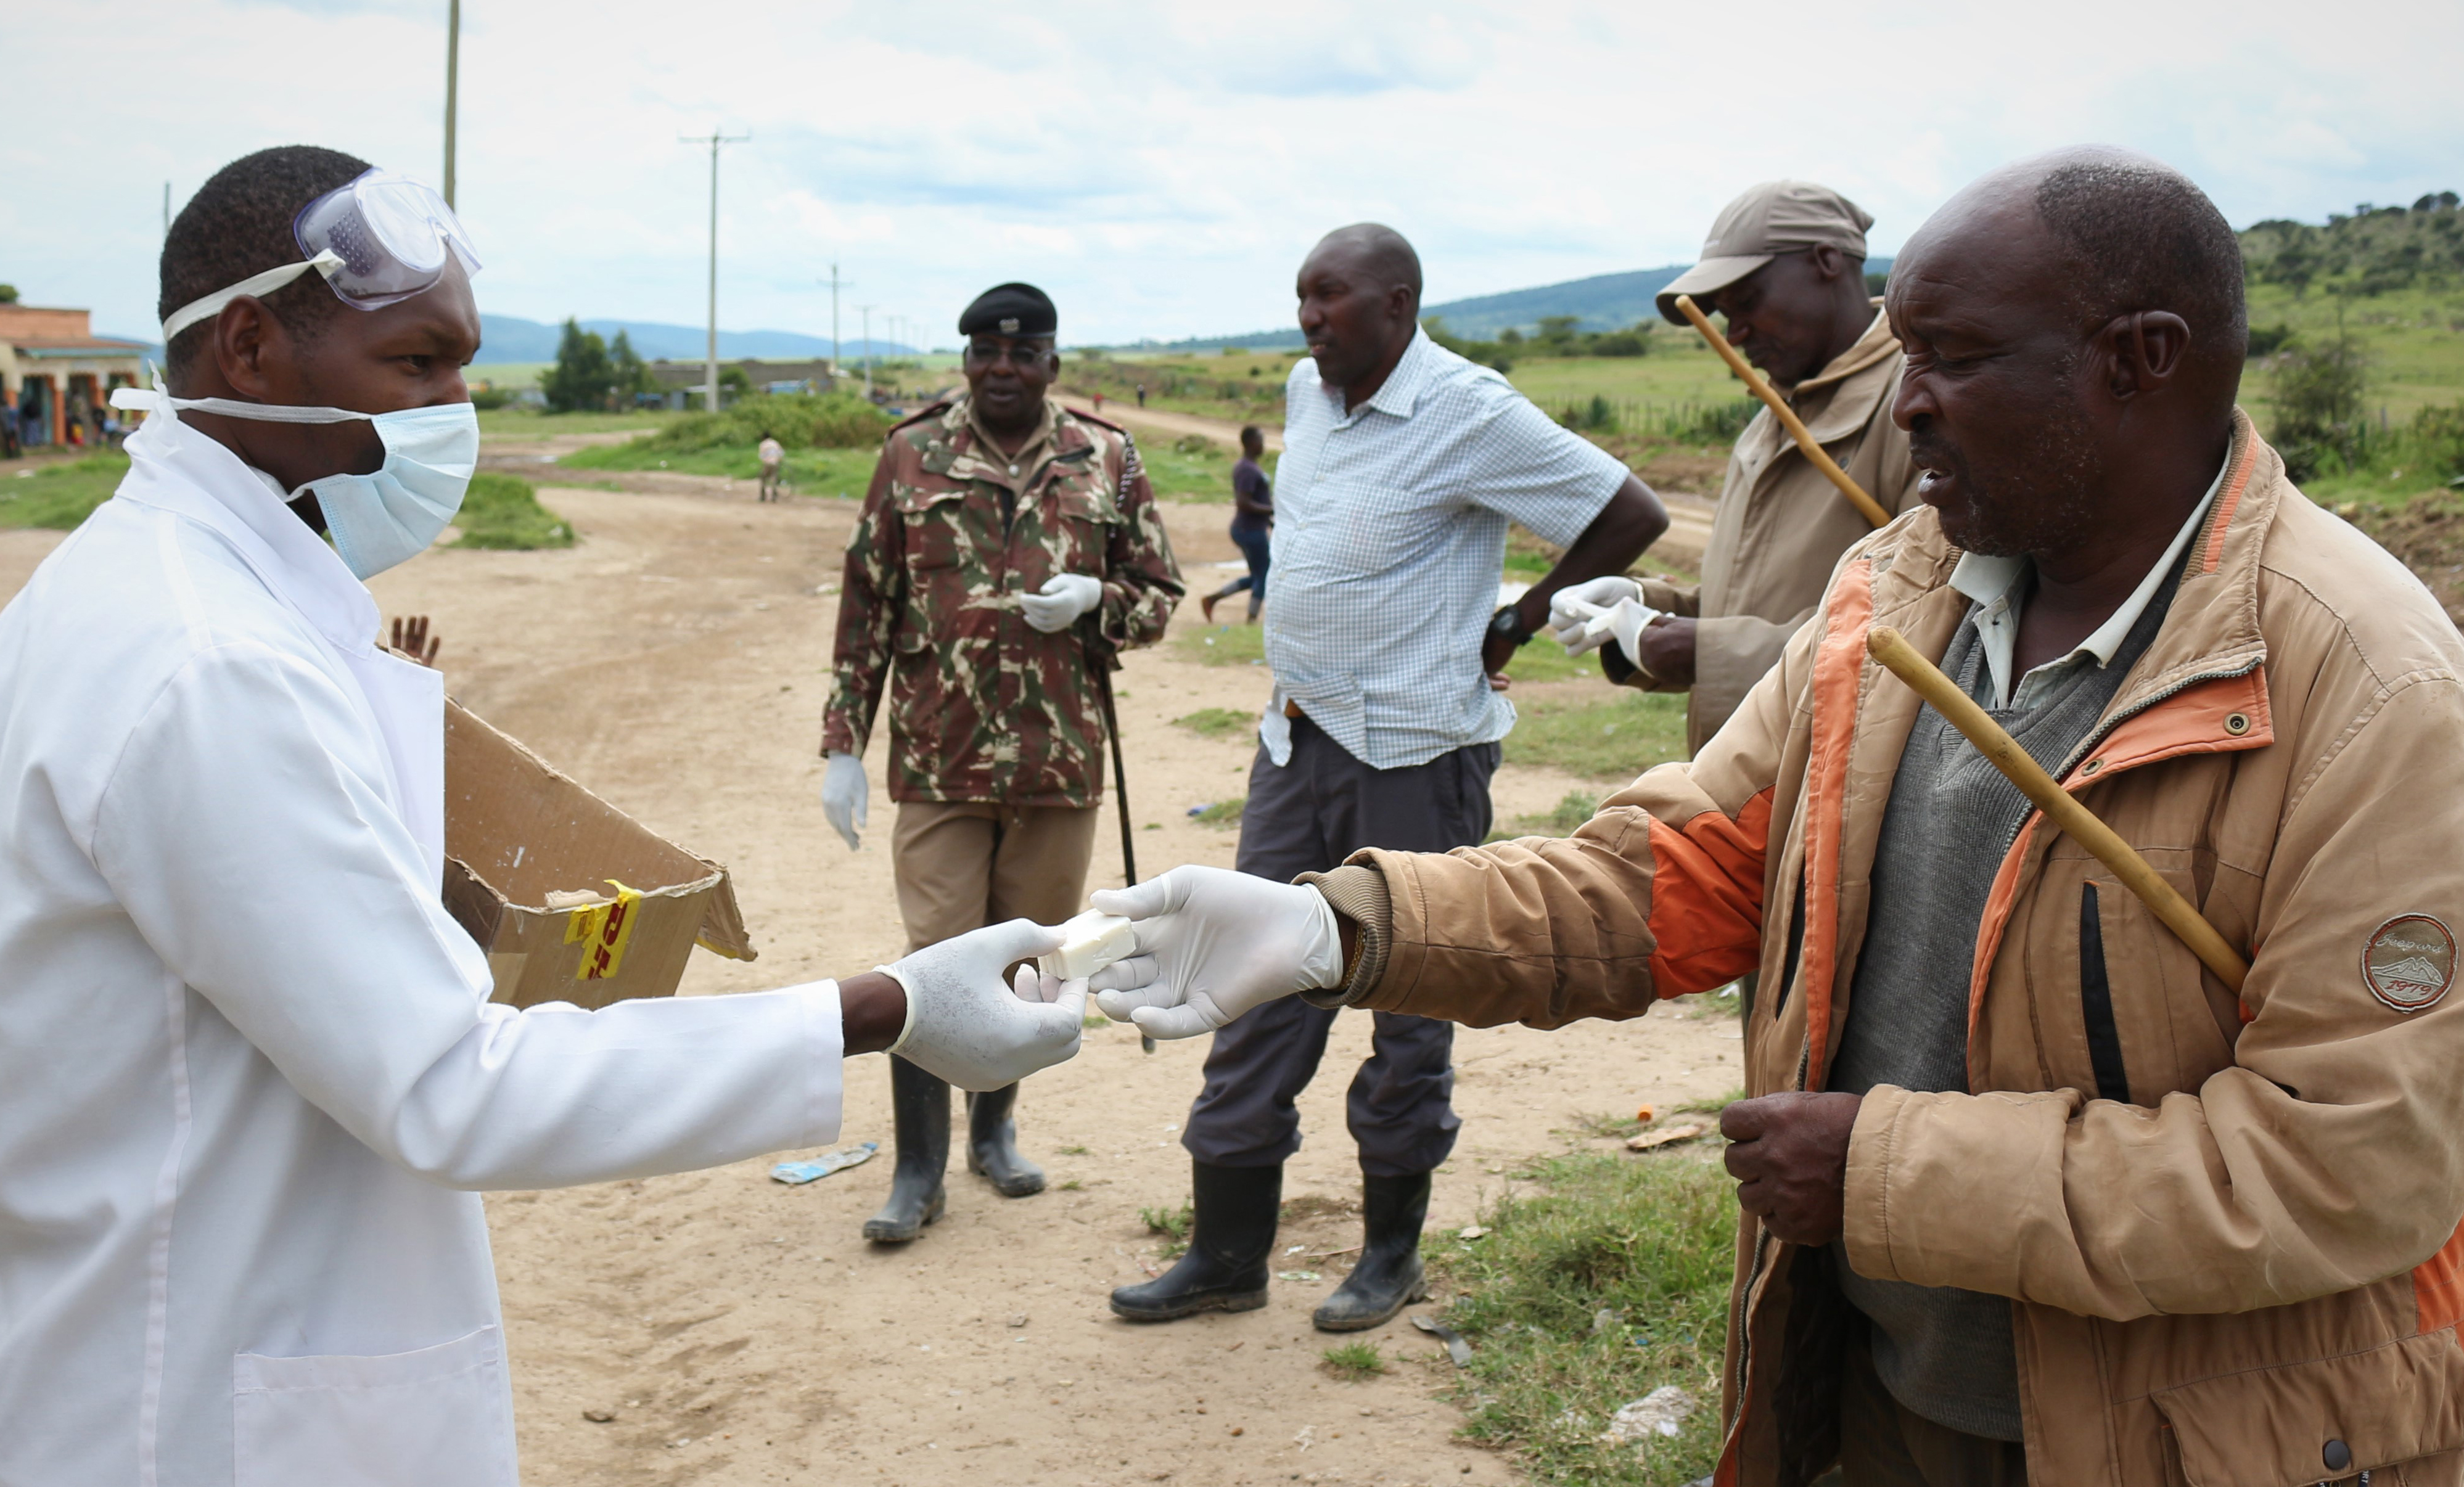 Duke Ongori, who runs WE's mobile medical units, hands out soap while the Area Chief observes, part of the community awareness campaign to explain best practices.